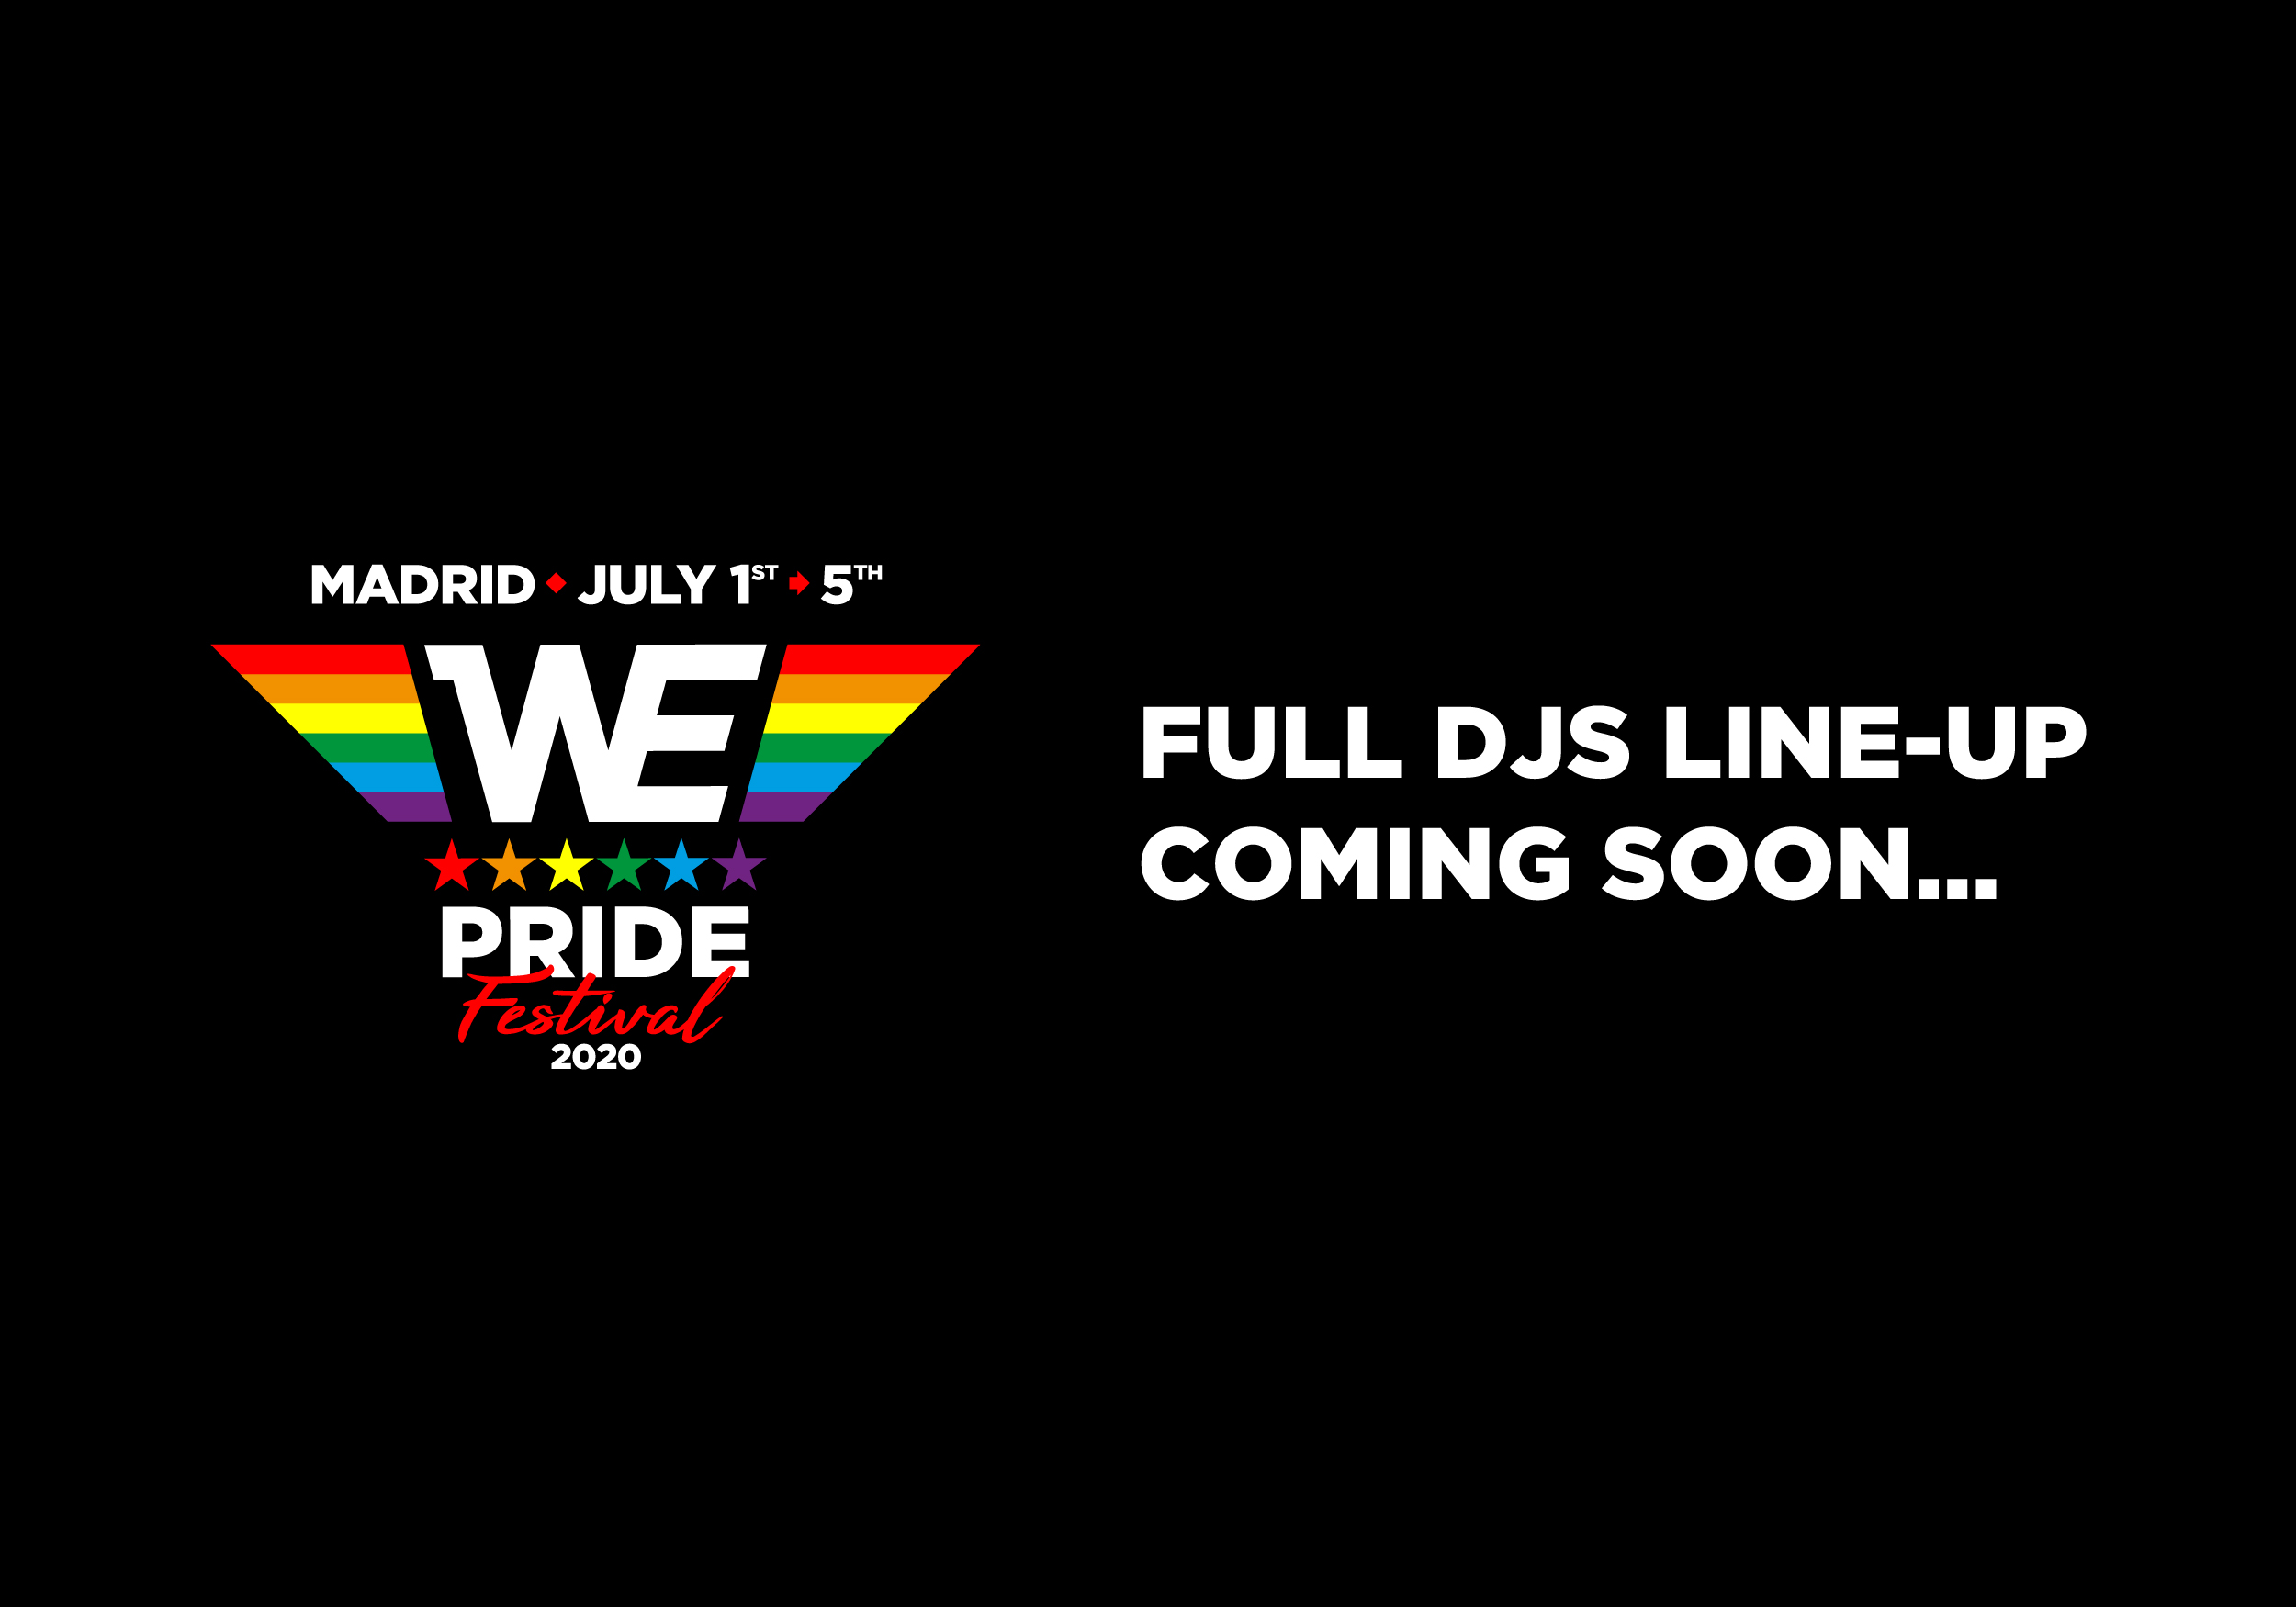 WE-PrideFestival2020-WEB-FULLDJS